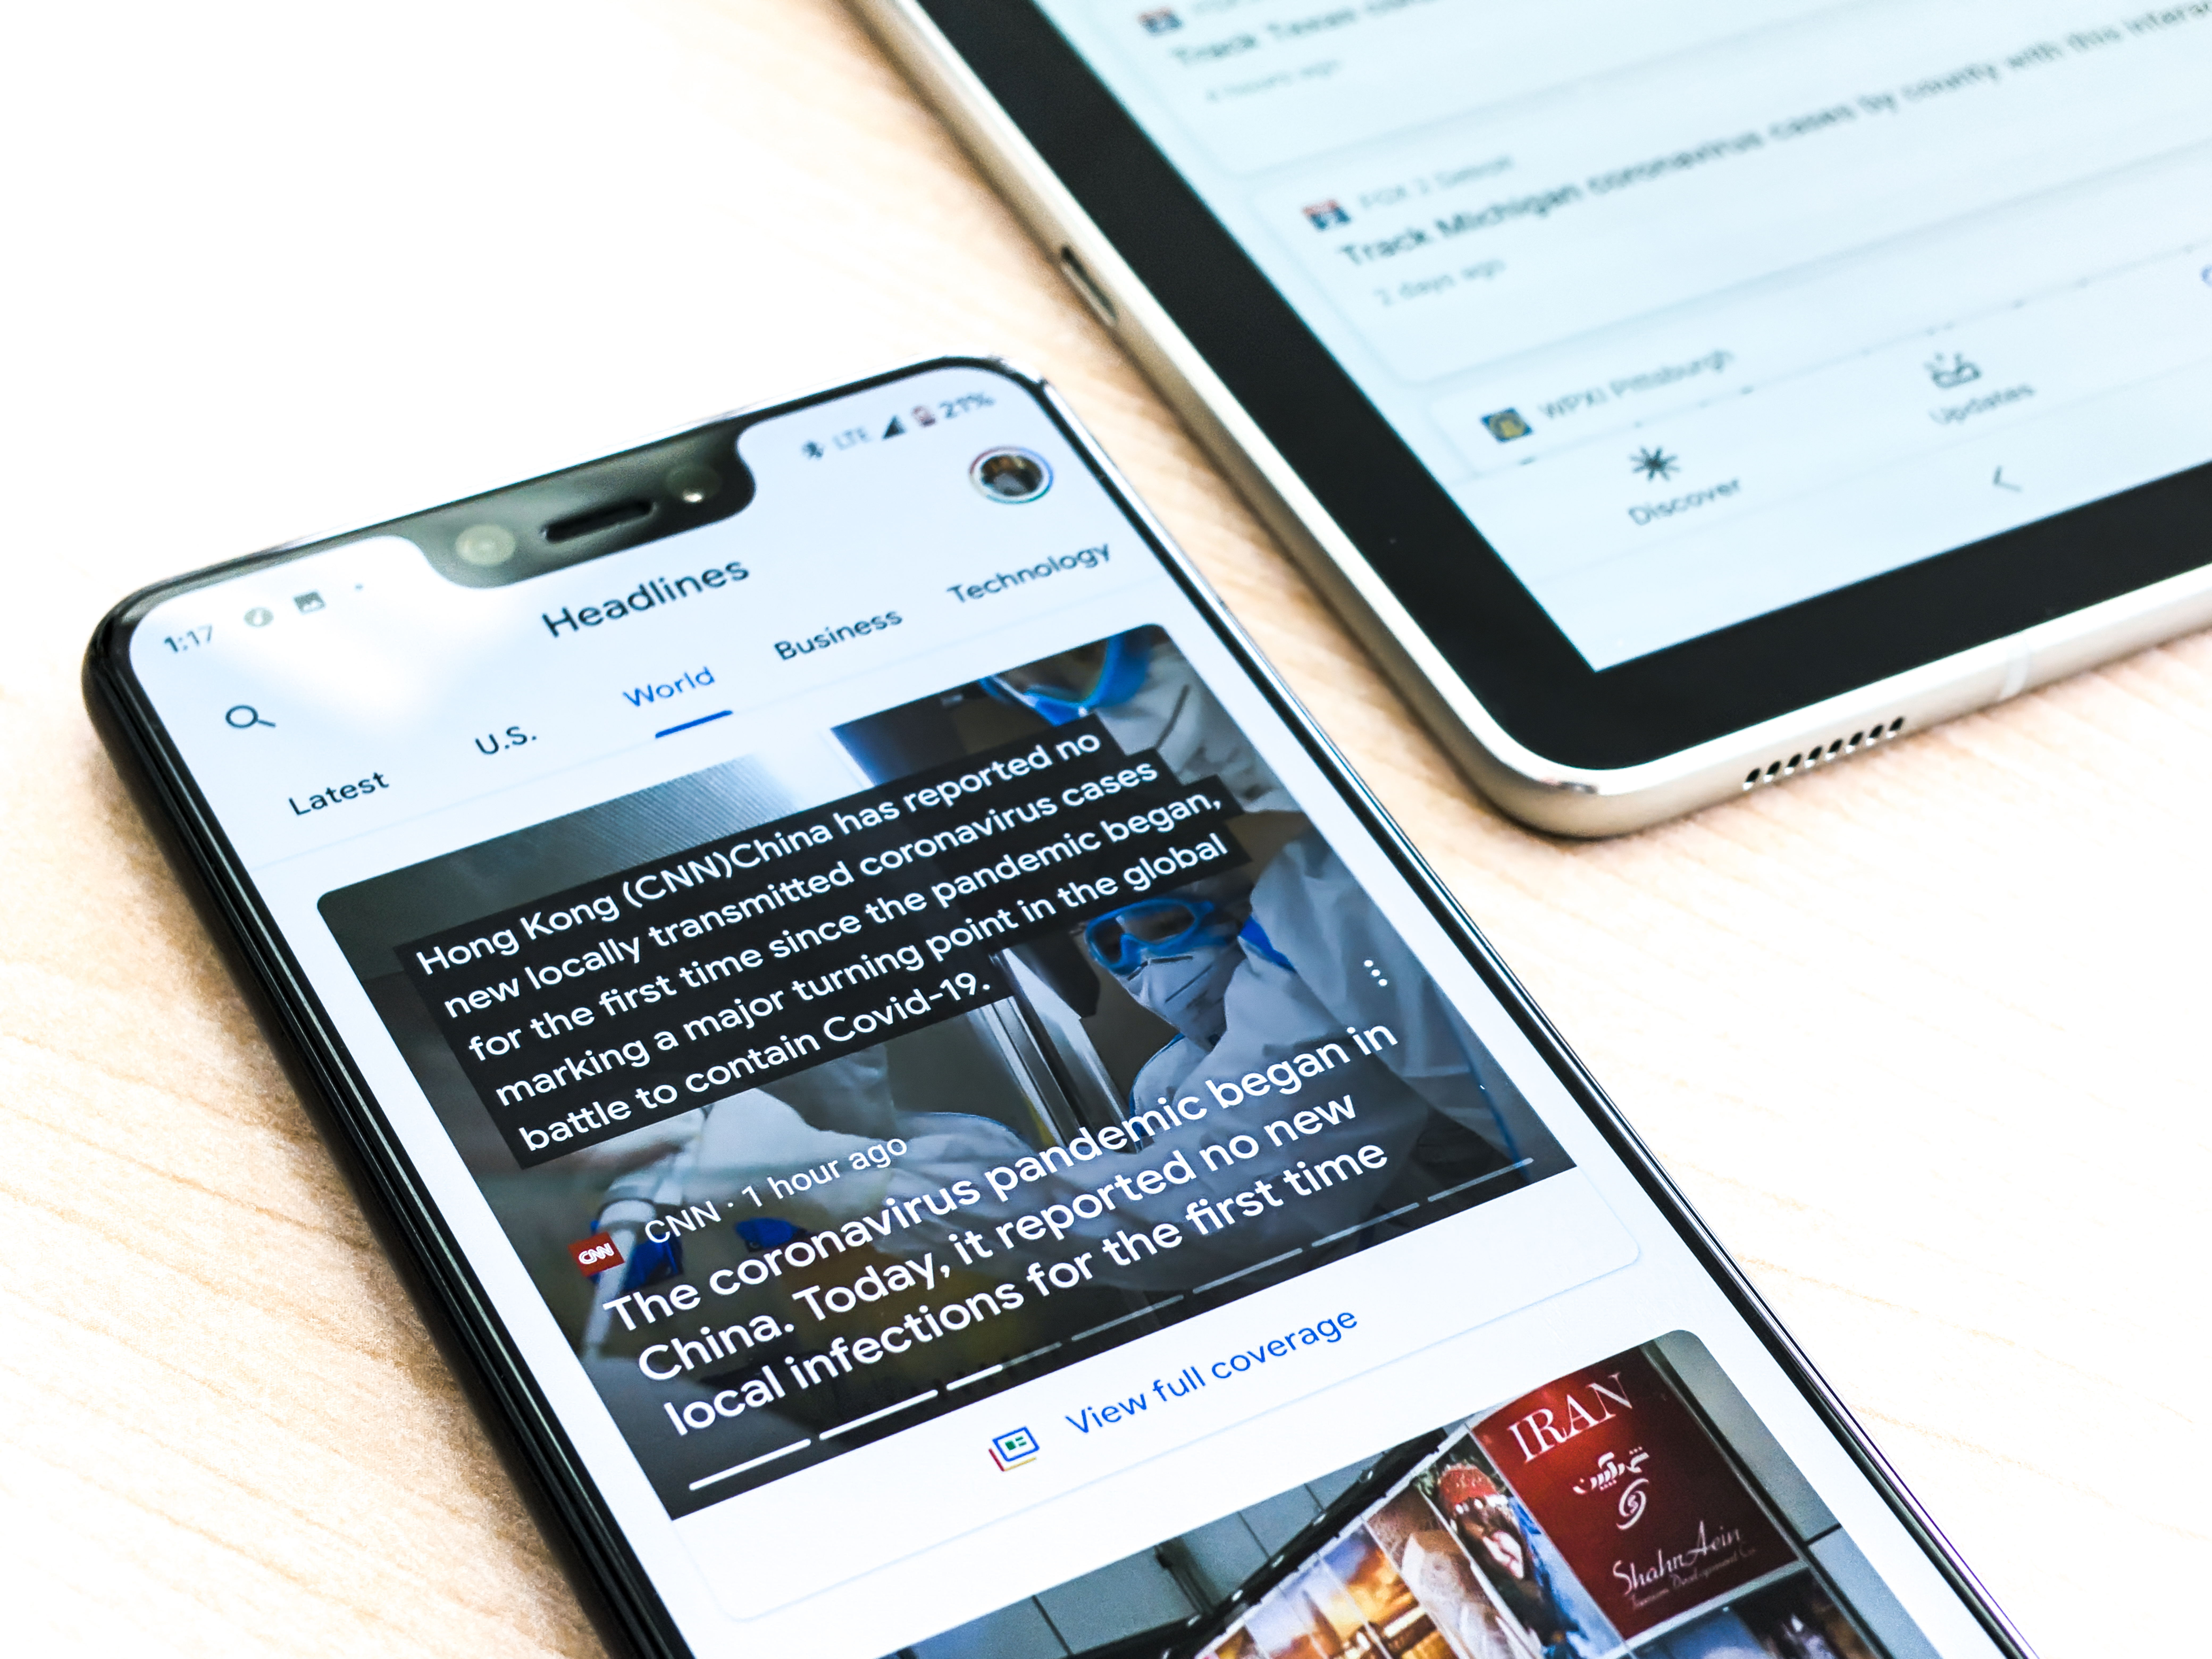 A Google pixel 3XL showing Covid-19 information from the Google News app sits on a wooden table next to a Samsung Galaxy Tablet.